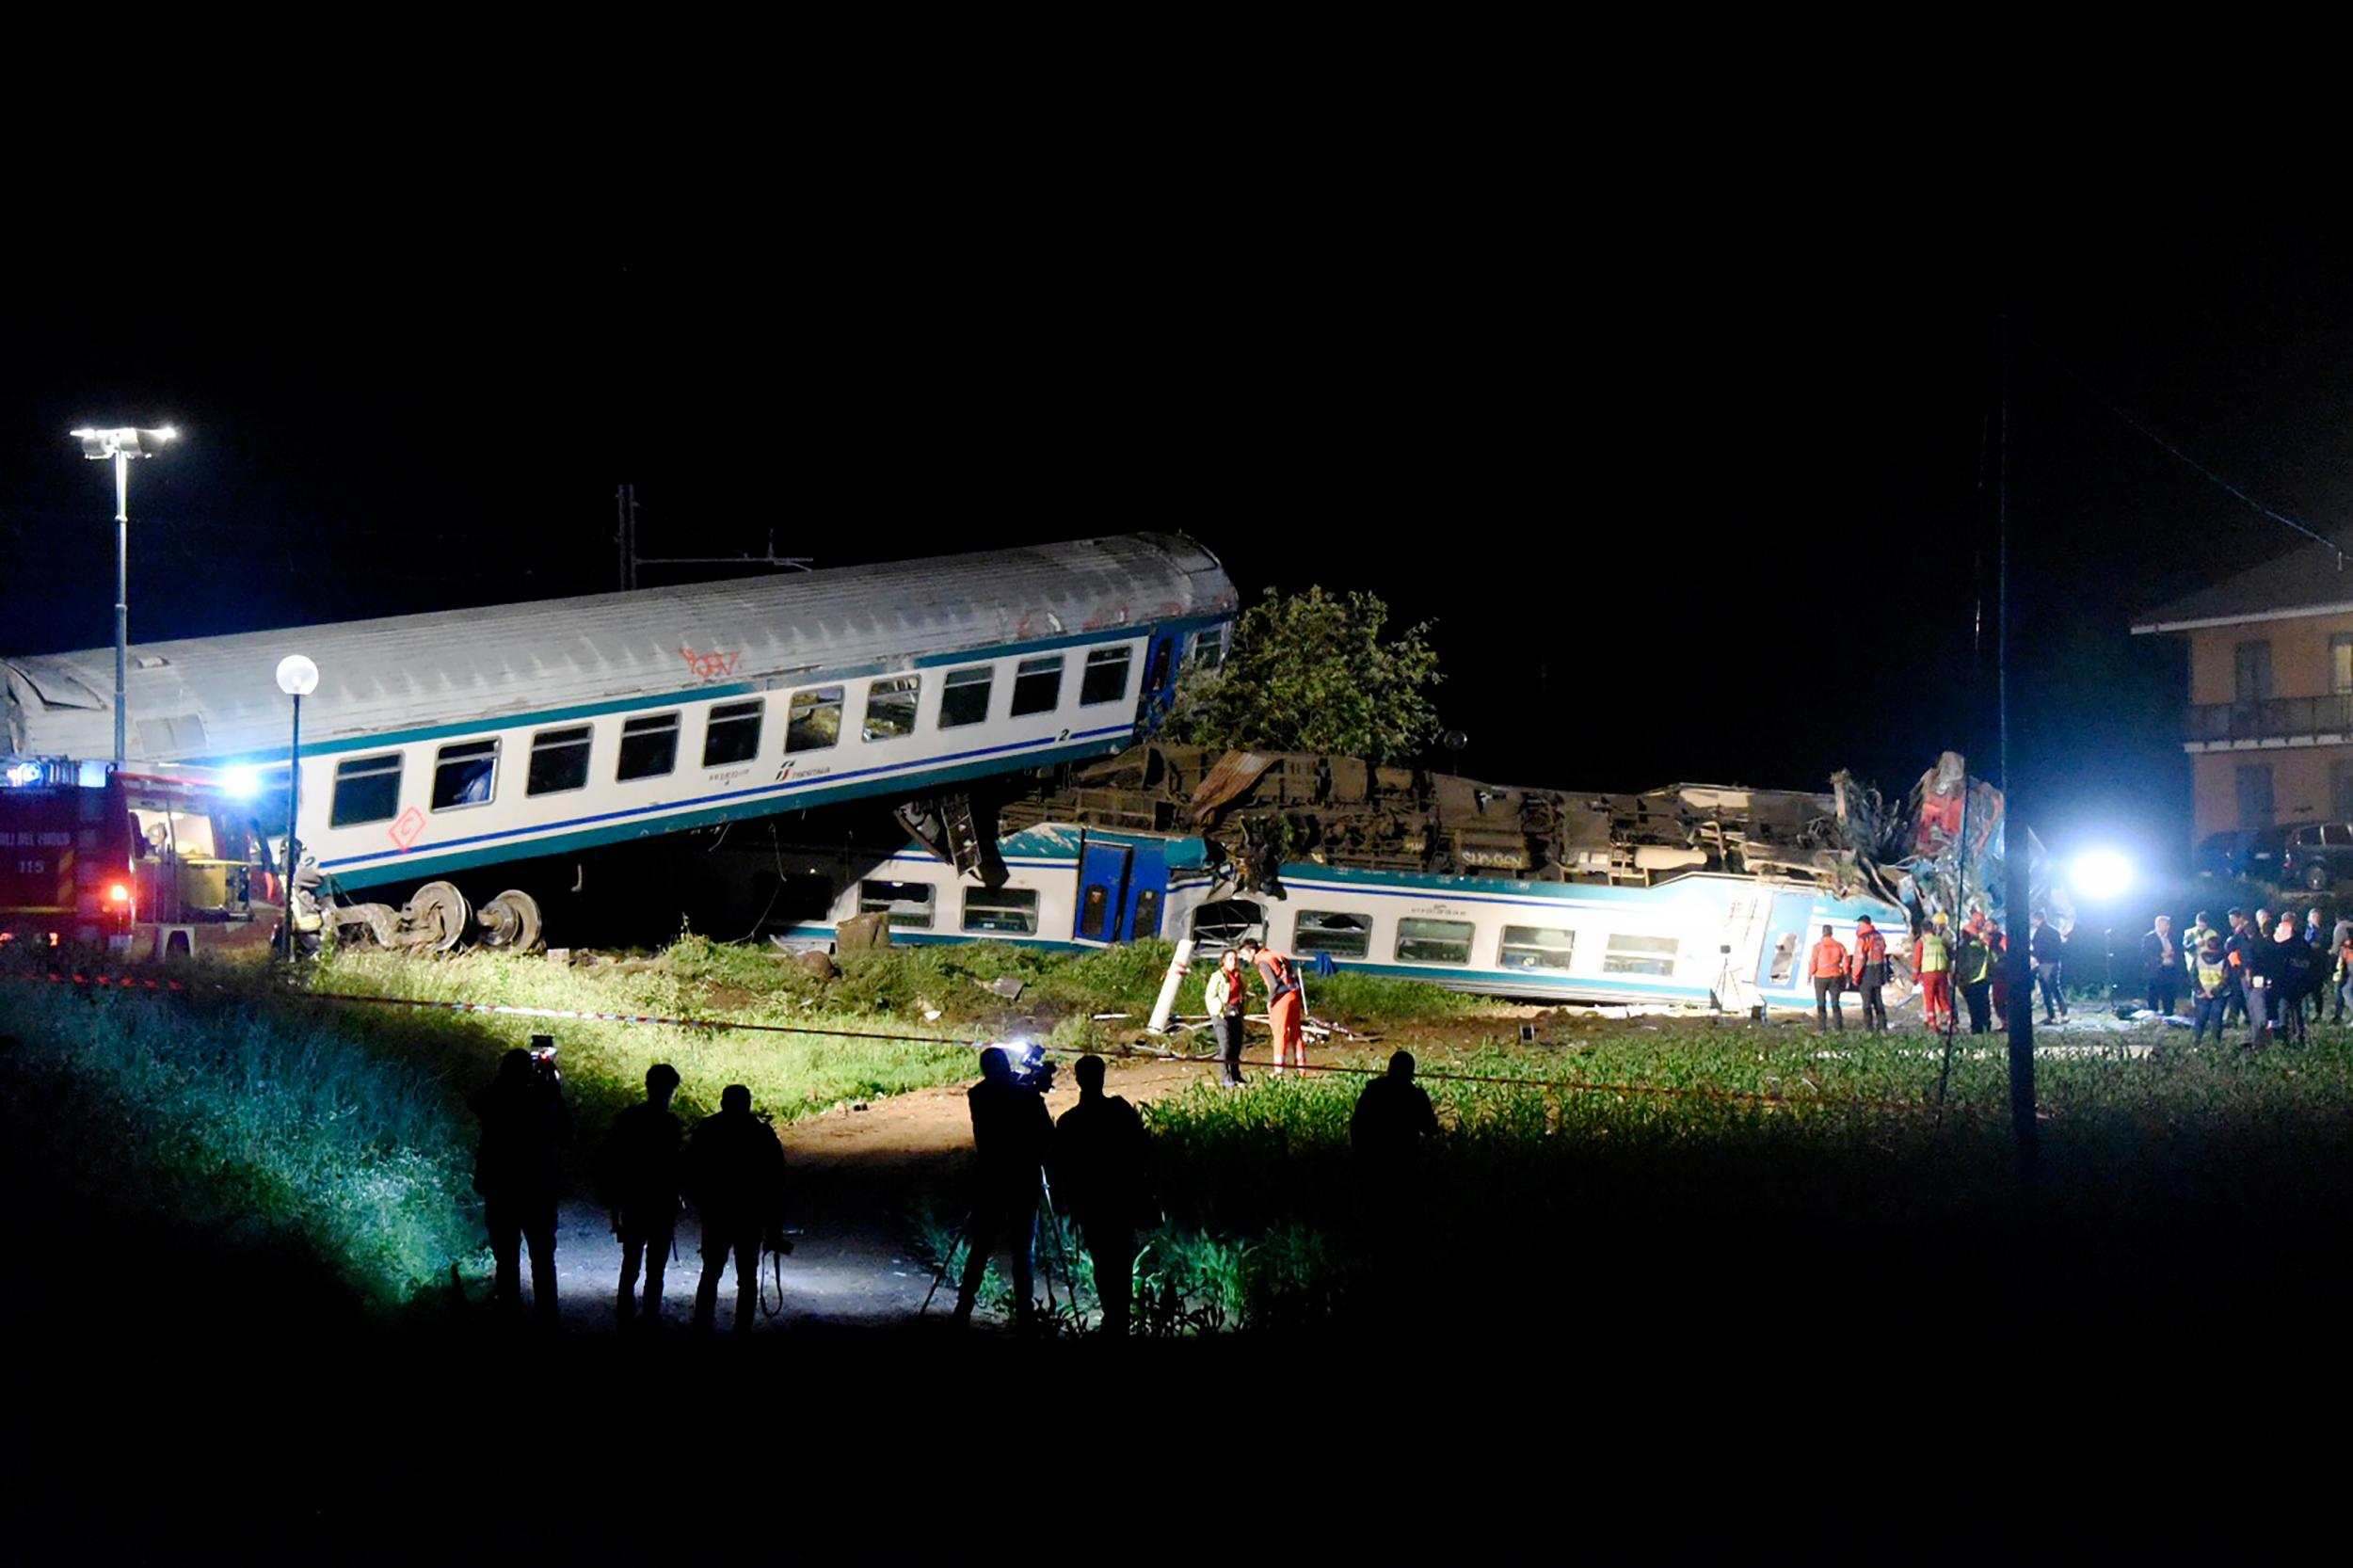 Italy train crash: At least two dead after train hits lorry and derails near Turin